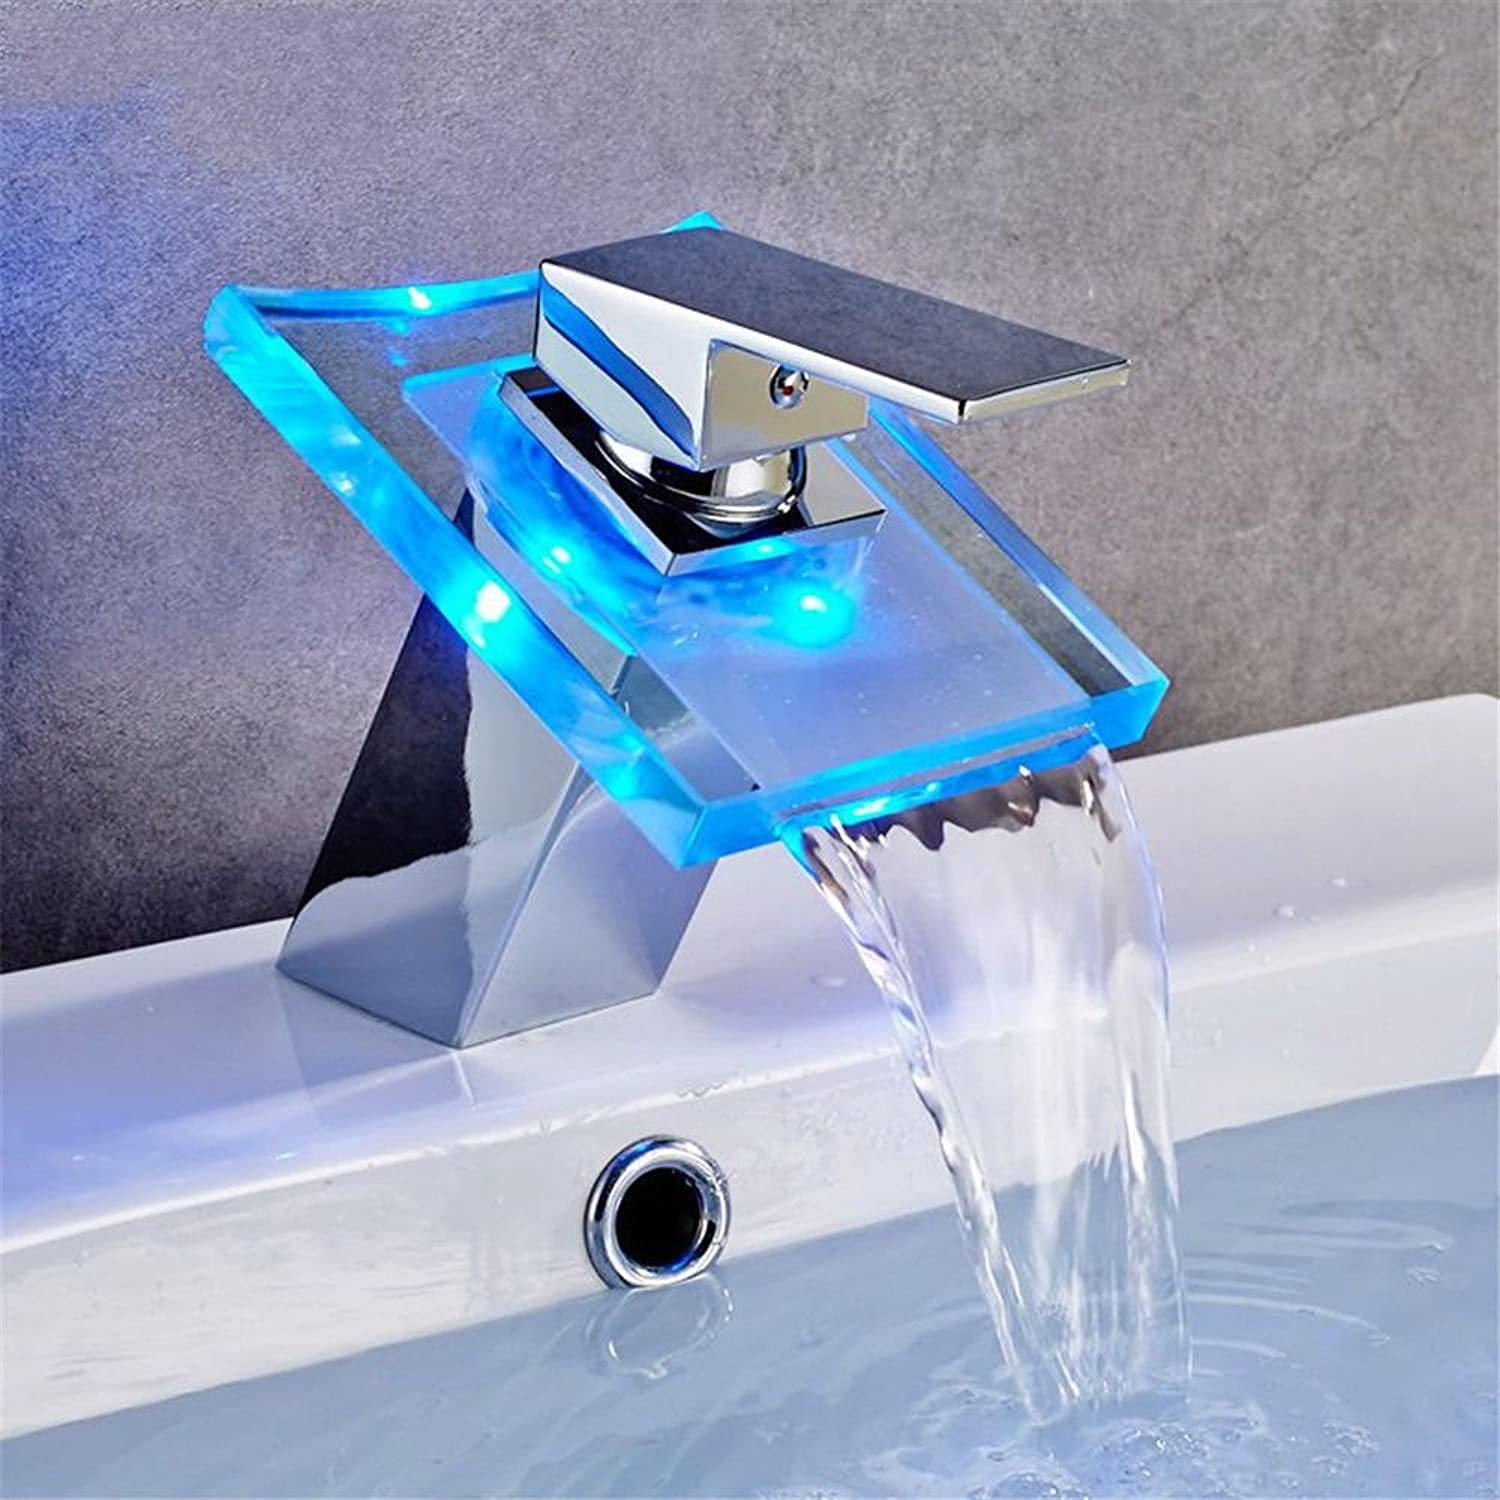 Lpophy Bathroom Sink Mixer Taps Faucet Bath Waterfall Cold and Hot Water Tap for Washroom Bathroom and Kitchen Led Hot and Cold Water Single Handle Copper Temperature Control color Change